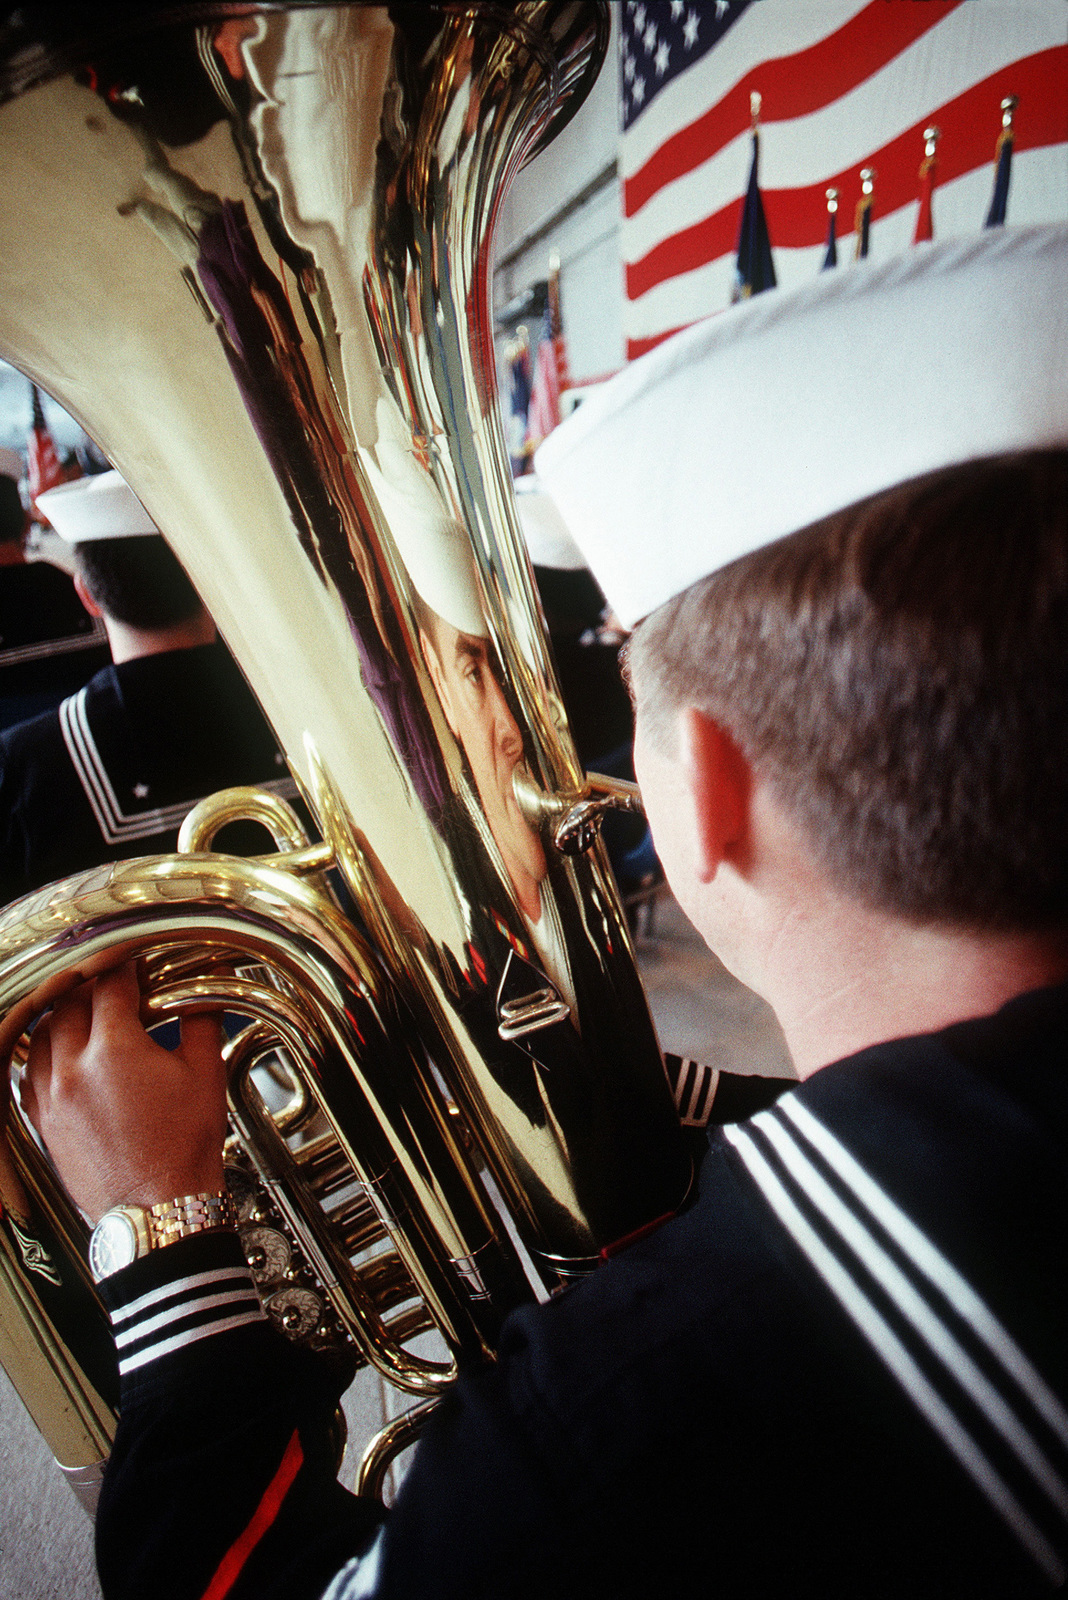 """Navy Photojournalist are taught to look for the """"unusual"""" image. Here, it appears the French Horn player is observing his own reflection in the instrument"""